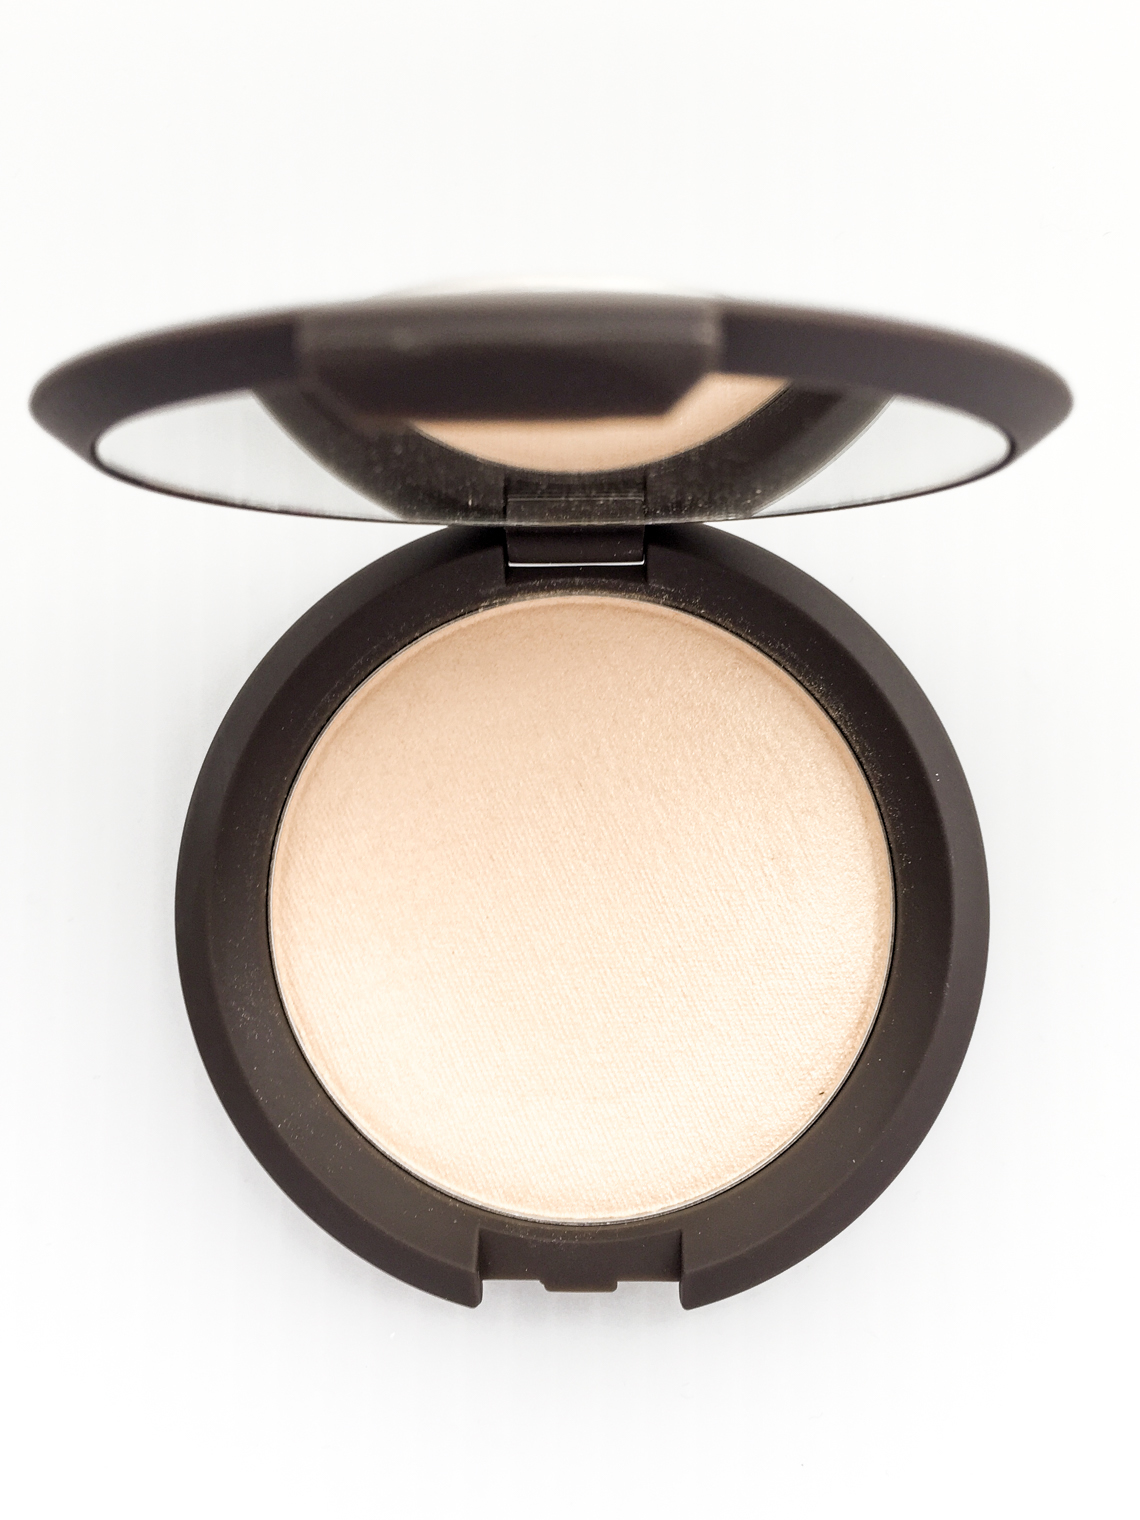 becca_shimmeringskinperfecter_review2